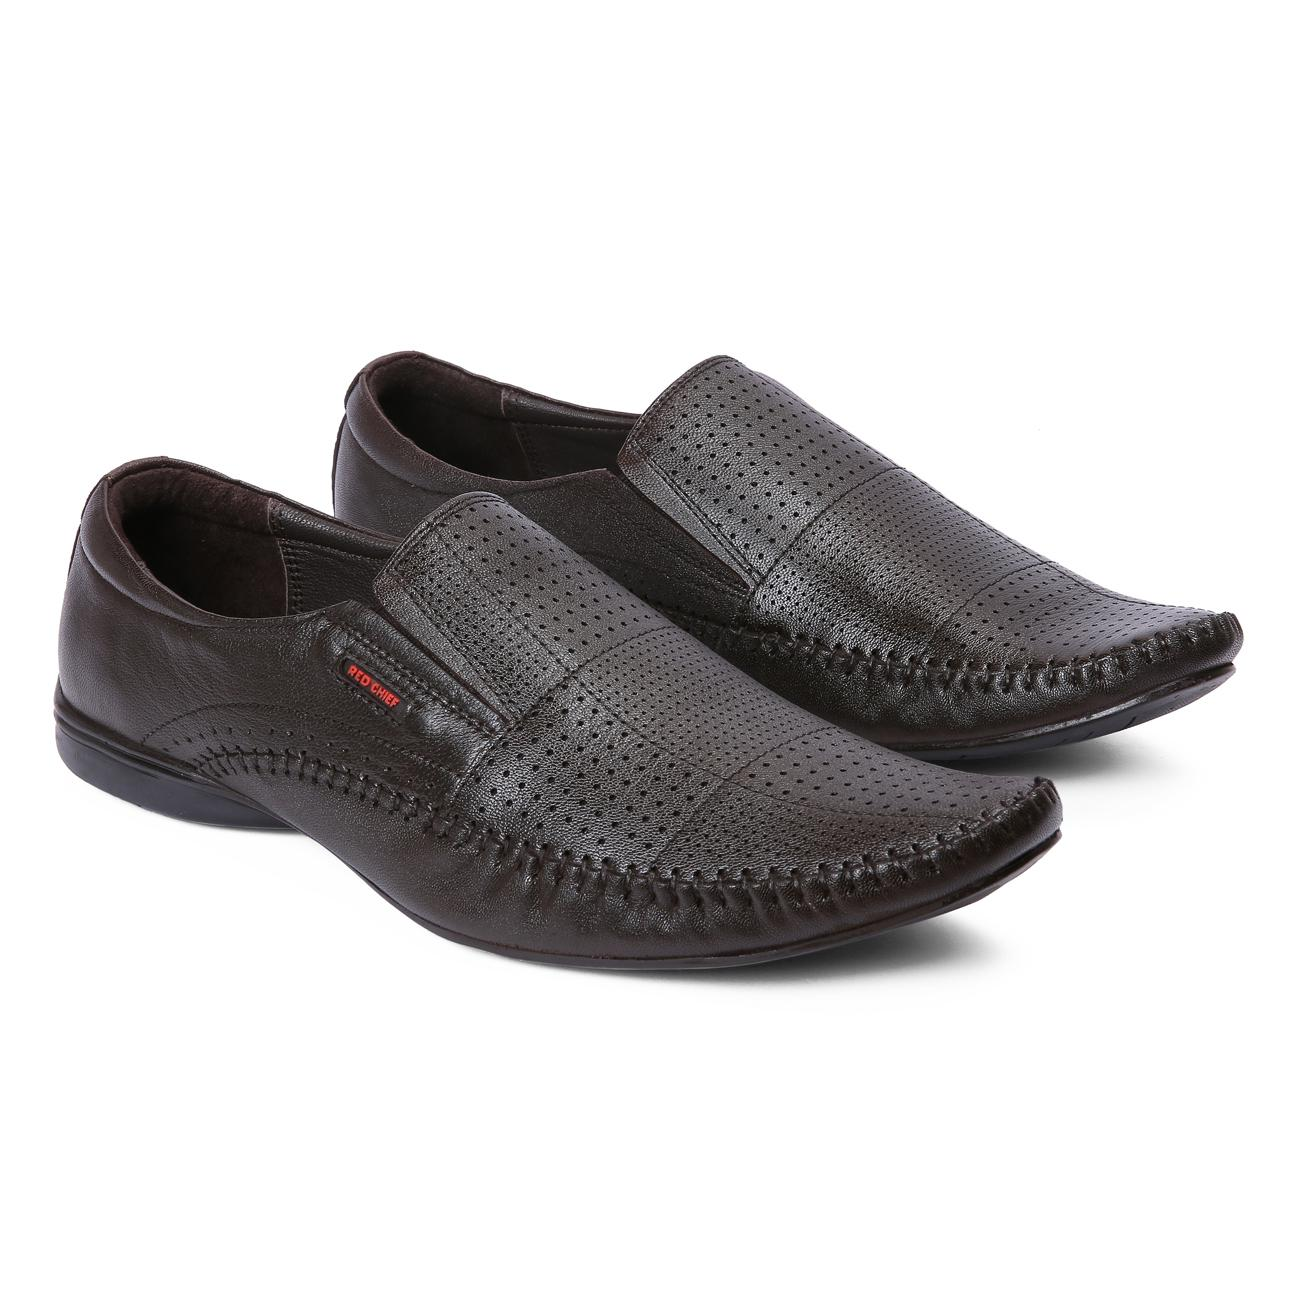 brown leather slip-on formal shoes rubber sole